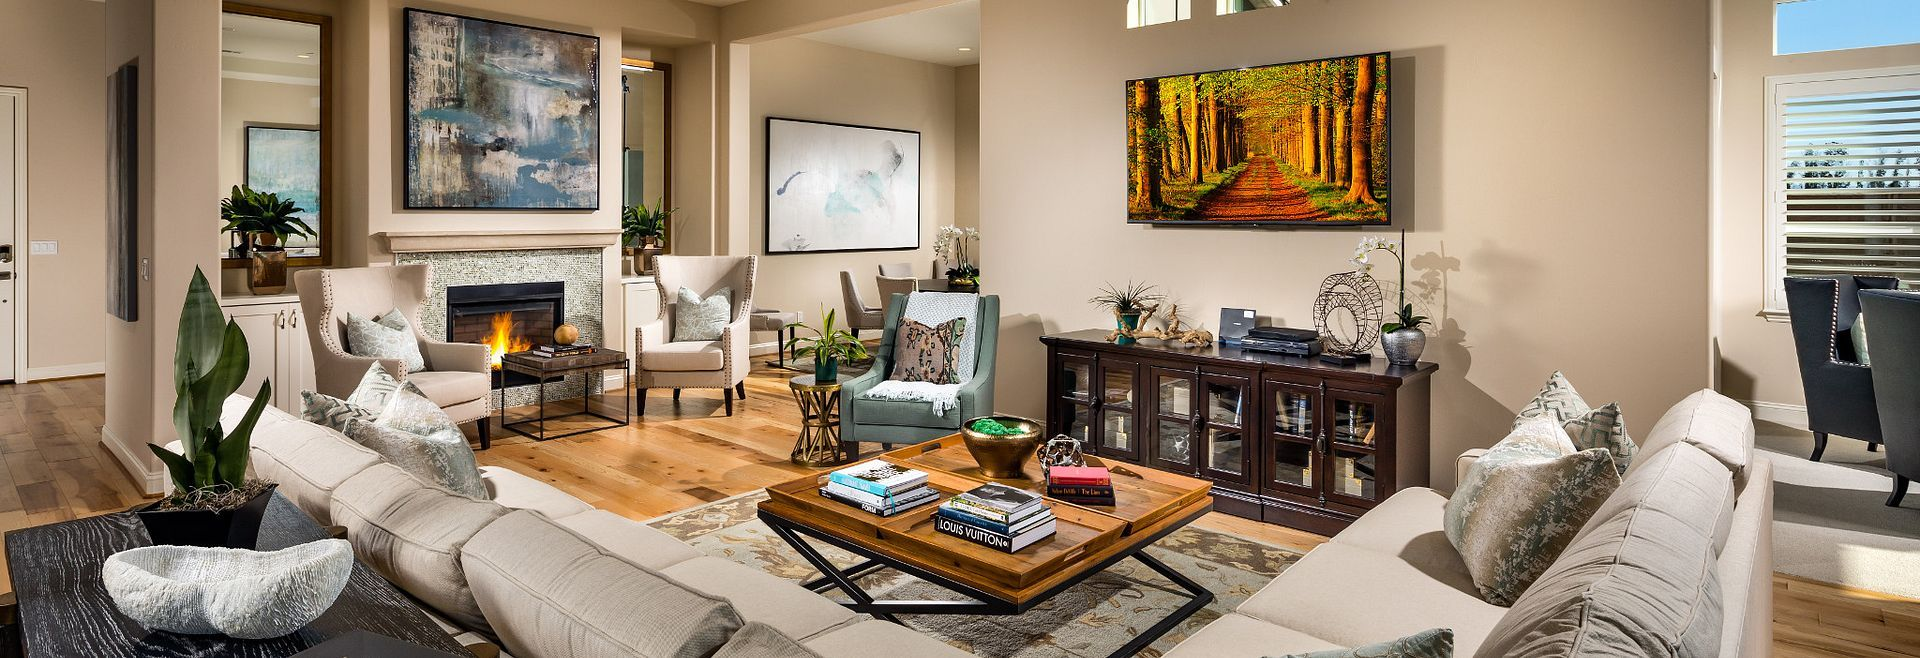 Living Area featured in the Marsanne By Shea Homes - Trilogy in San Luis Obispo, CA